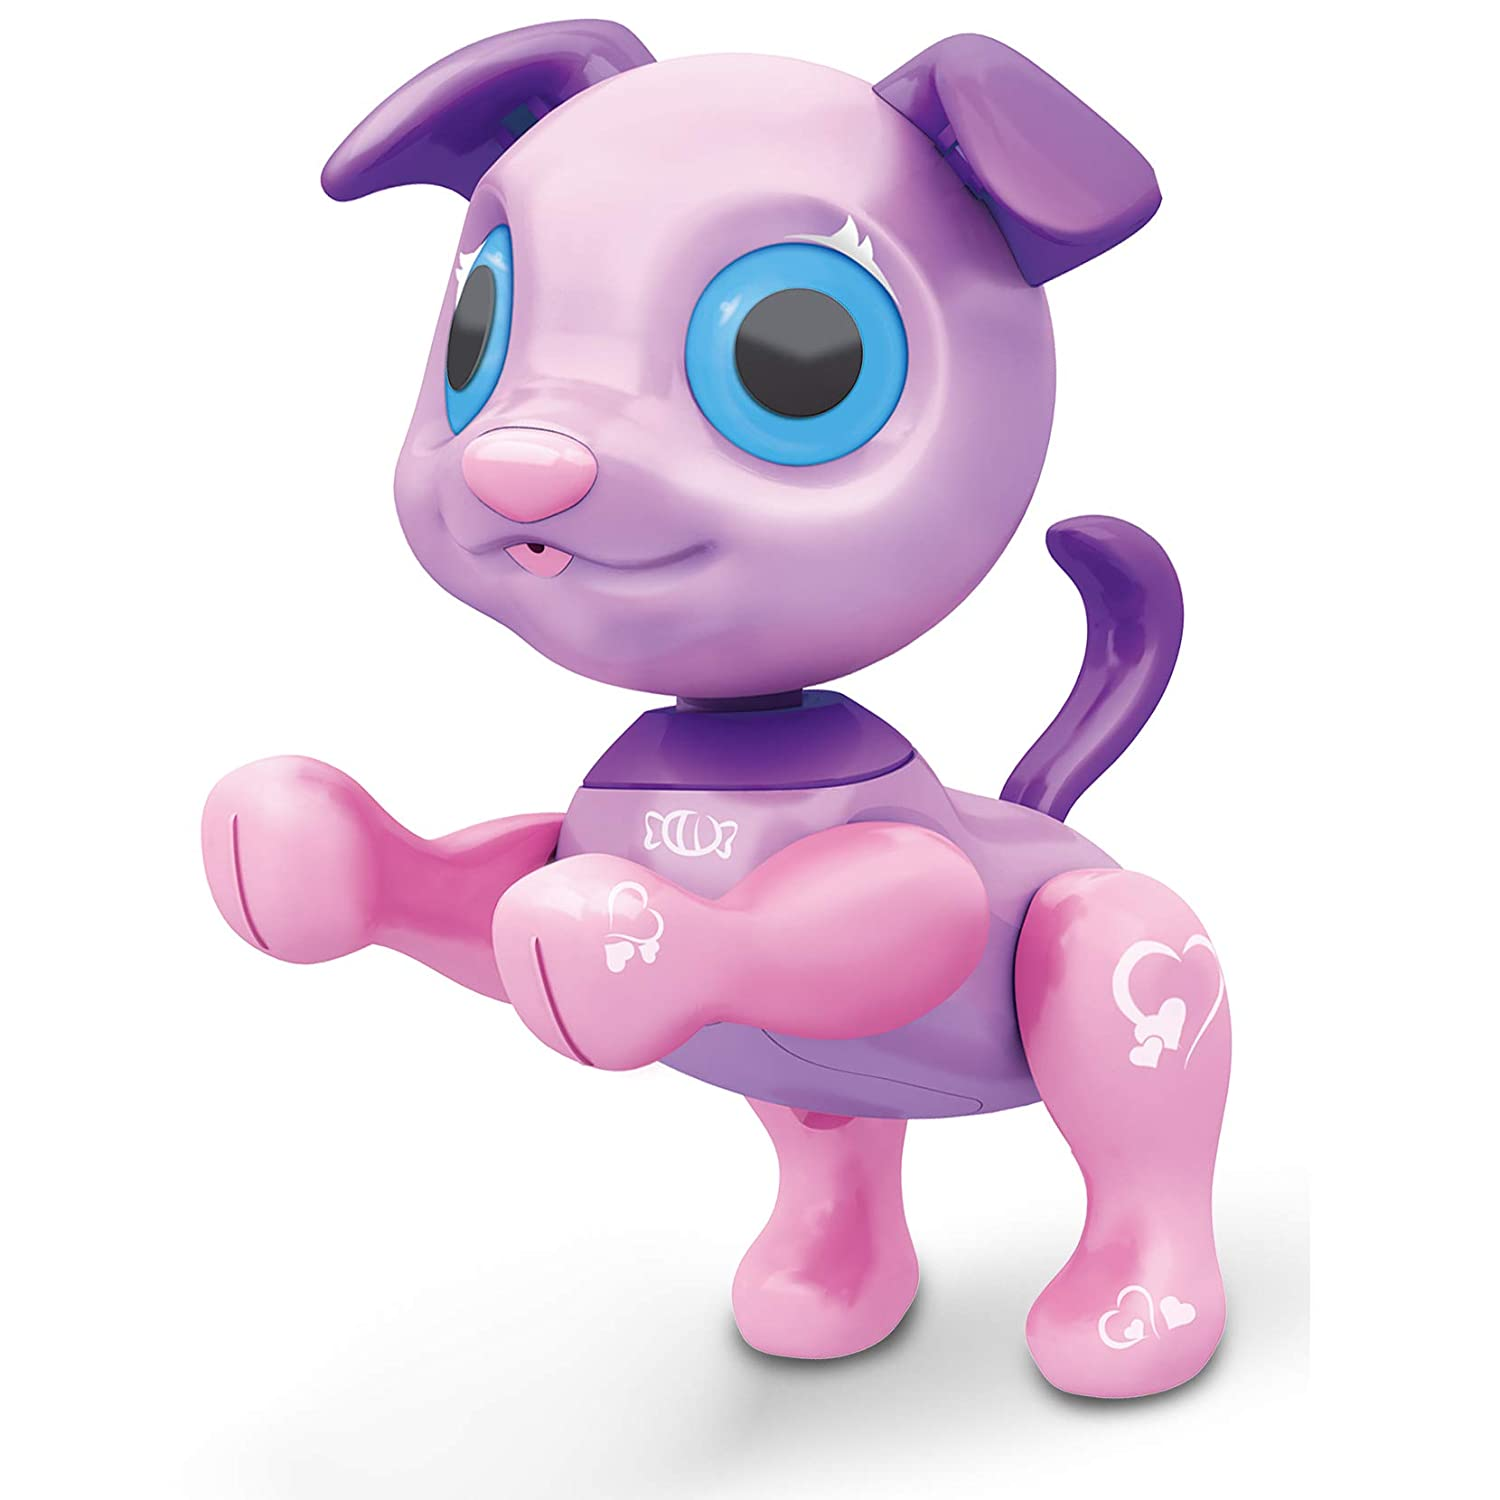 Liberty Imports My Best Friend Interactive Smart Puppy | Kids Electronic Pet Toy Robot Dog | Ideal Gift Idea for Girls Purple